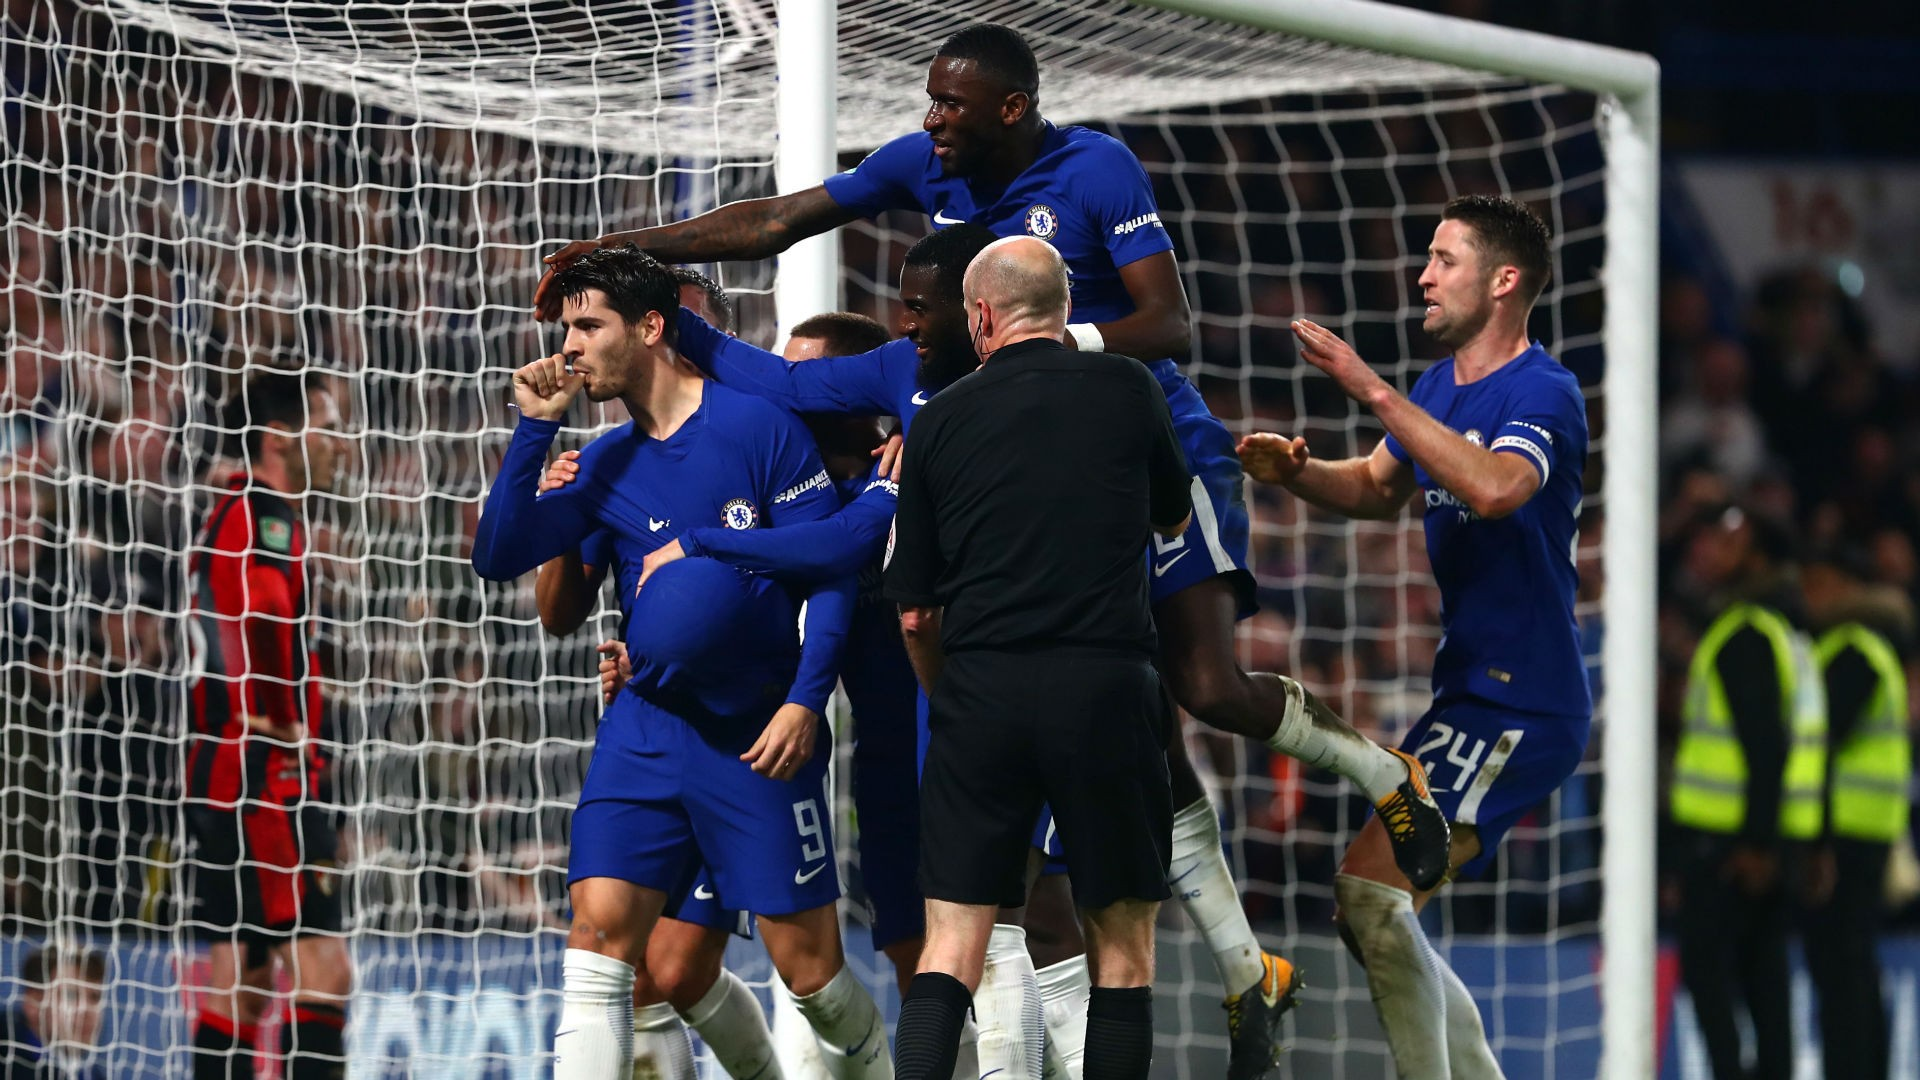 Chelsea vs Bournemouth 2 1 EFL Cup Highlights